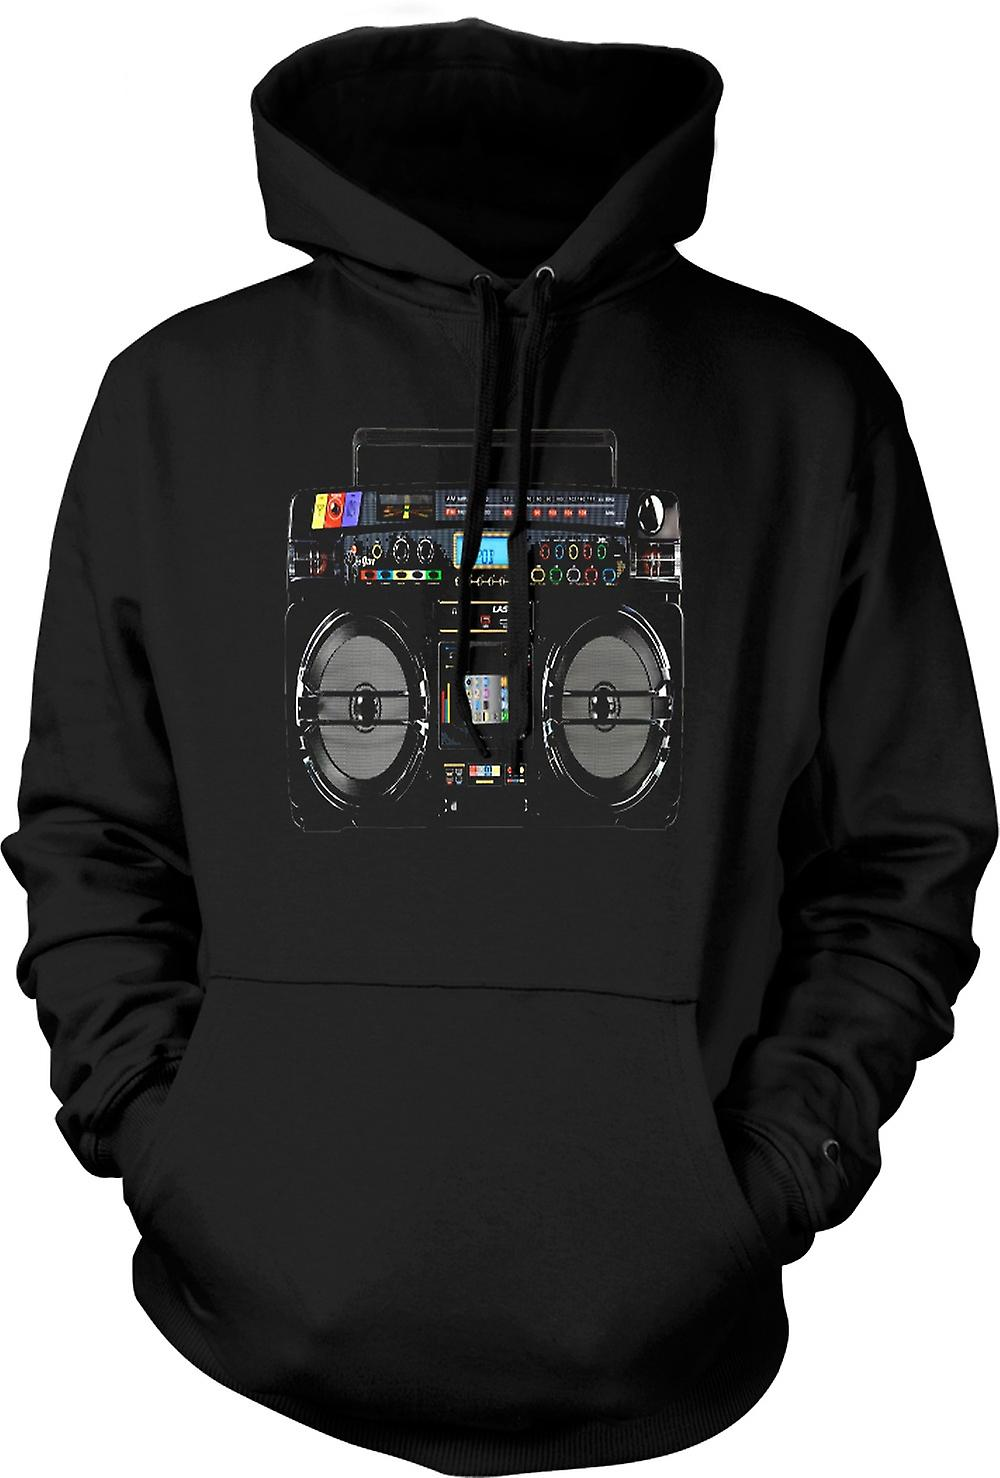 Kids Hoodie - iPod - Ghetto Boom Box